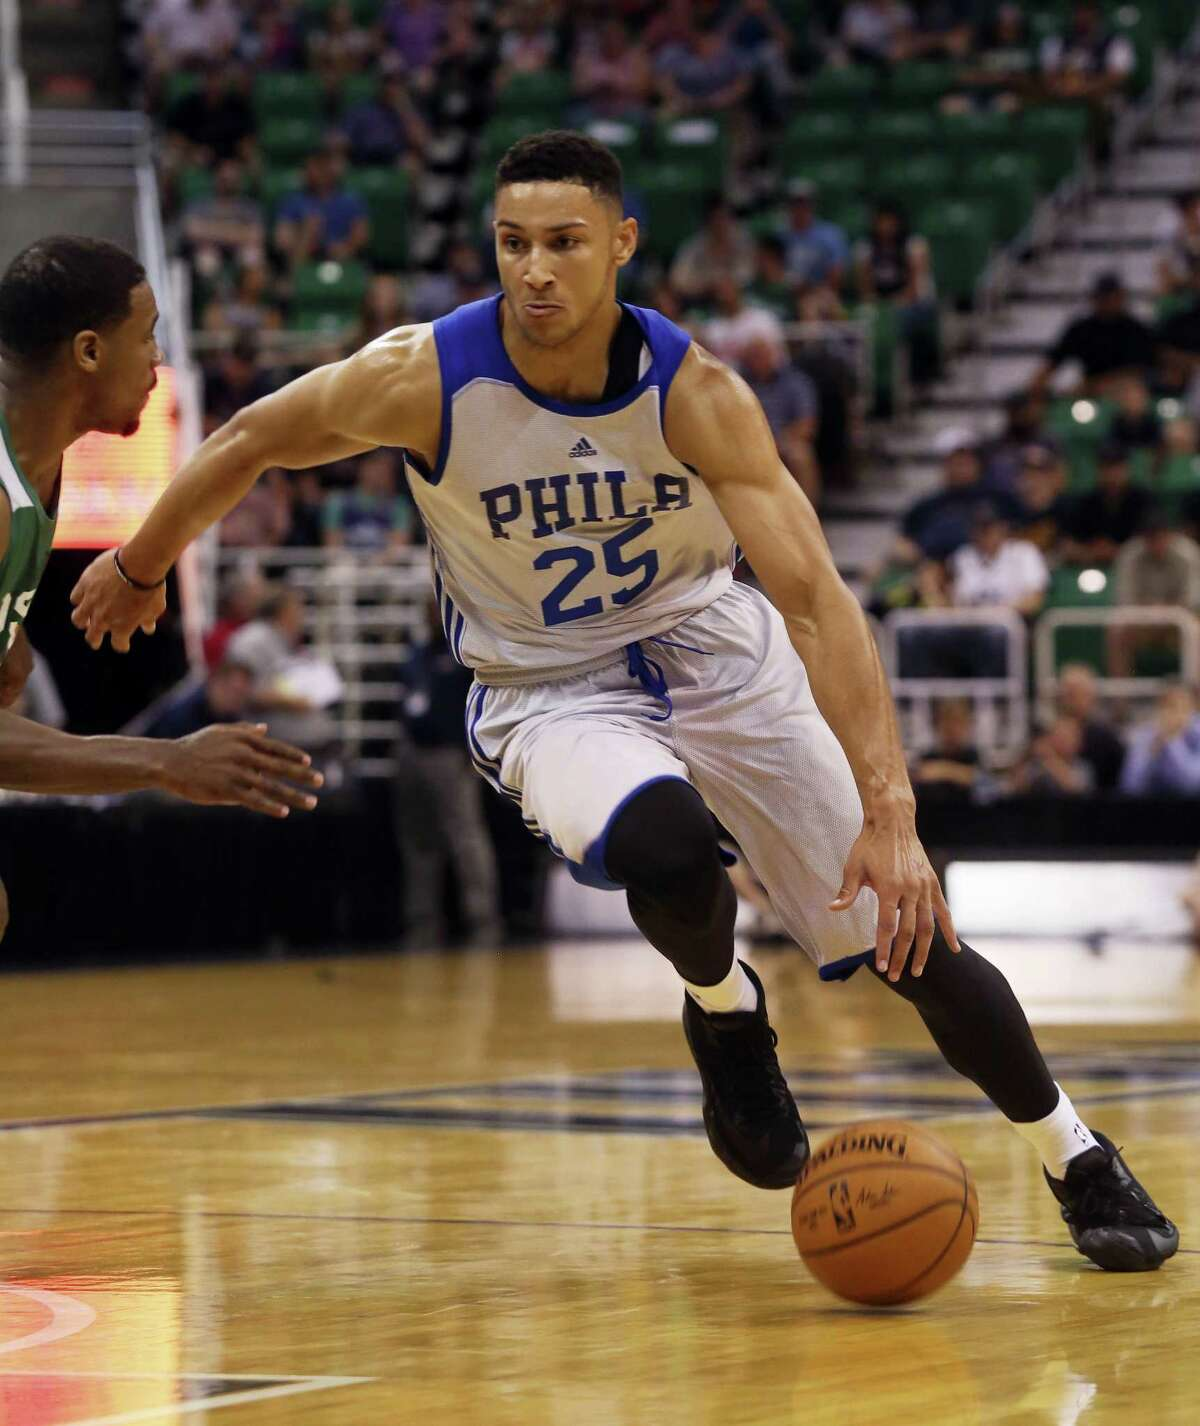 In this July 4, 2016 photo, Philadelphia 76ers' Ben Simmons dribbles downcourt during an NBA Summer League basketball game against the San Antonio Spurs in Salt Lake City. No. 1 overall pick Simmons broke a bone in his right foot on Sept. 30, 2016 during the 76ers' final training camp scrimmage at Stockton University.